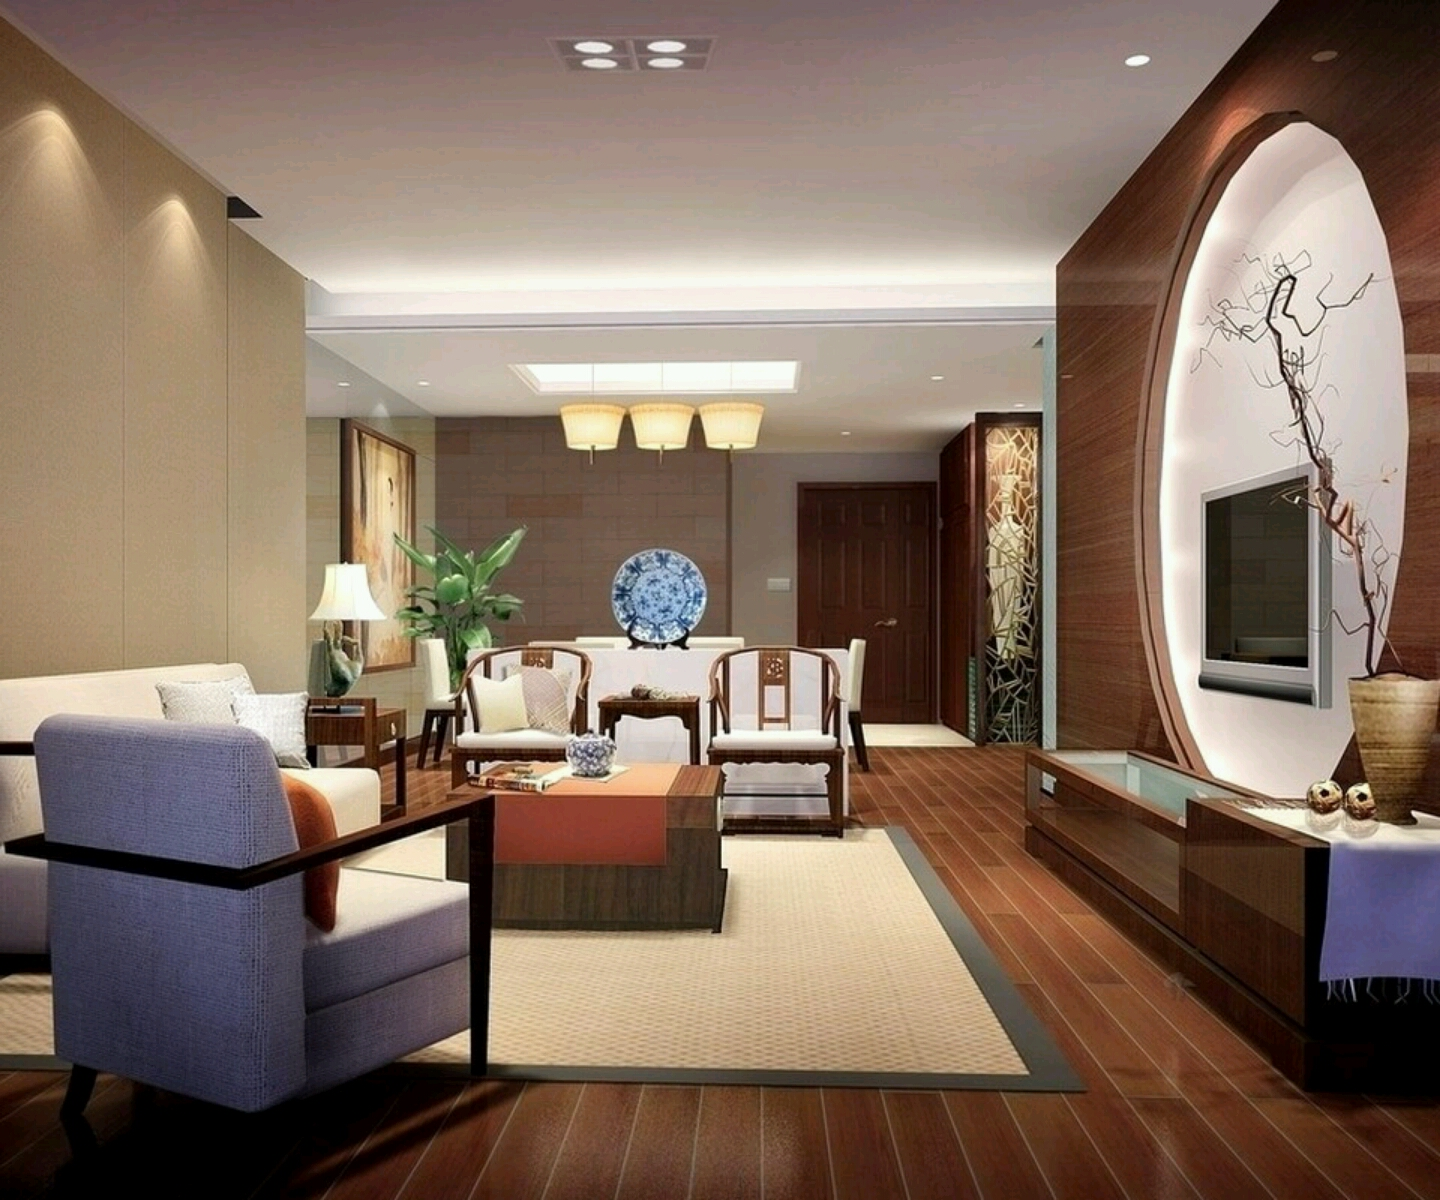 Luxury homes interior decoration living room designs ideas modern home designs - New homes interior design ideas ...